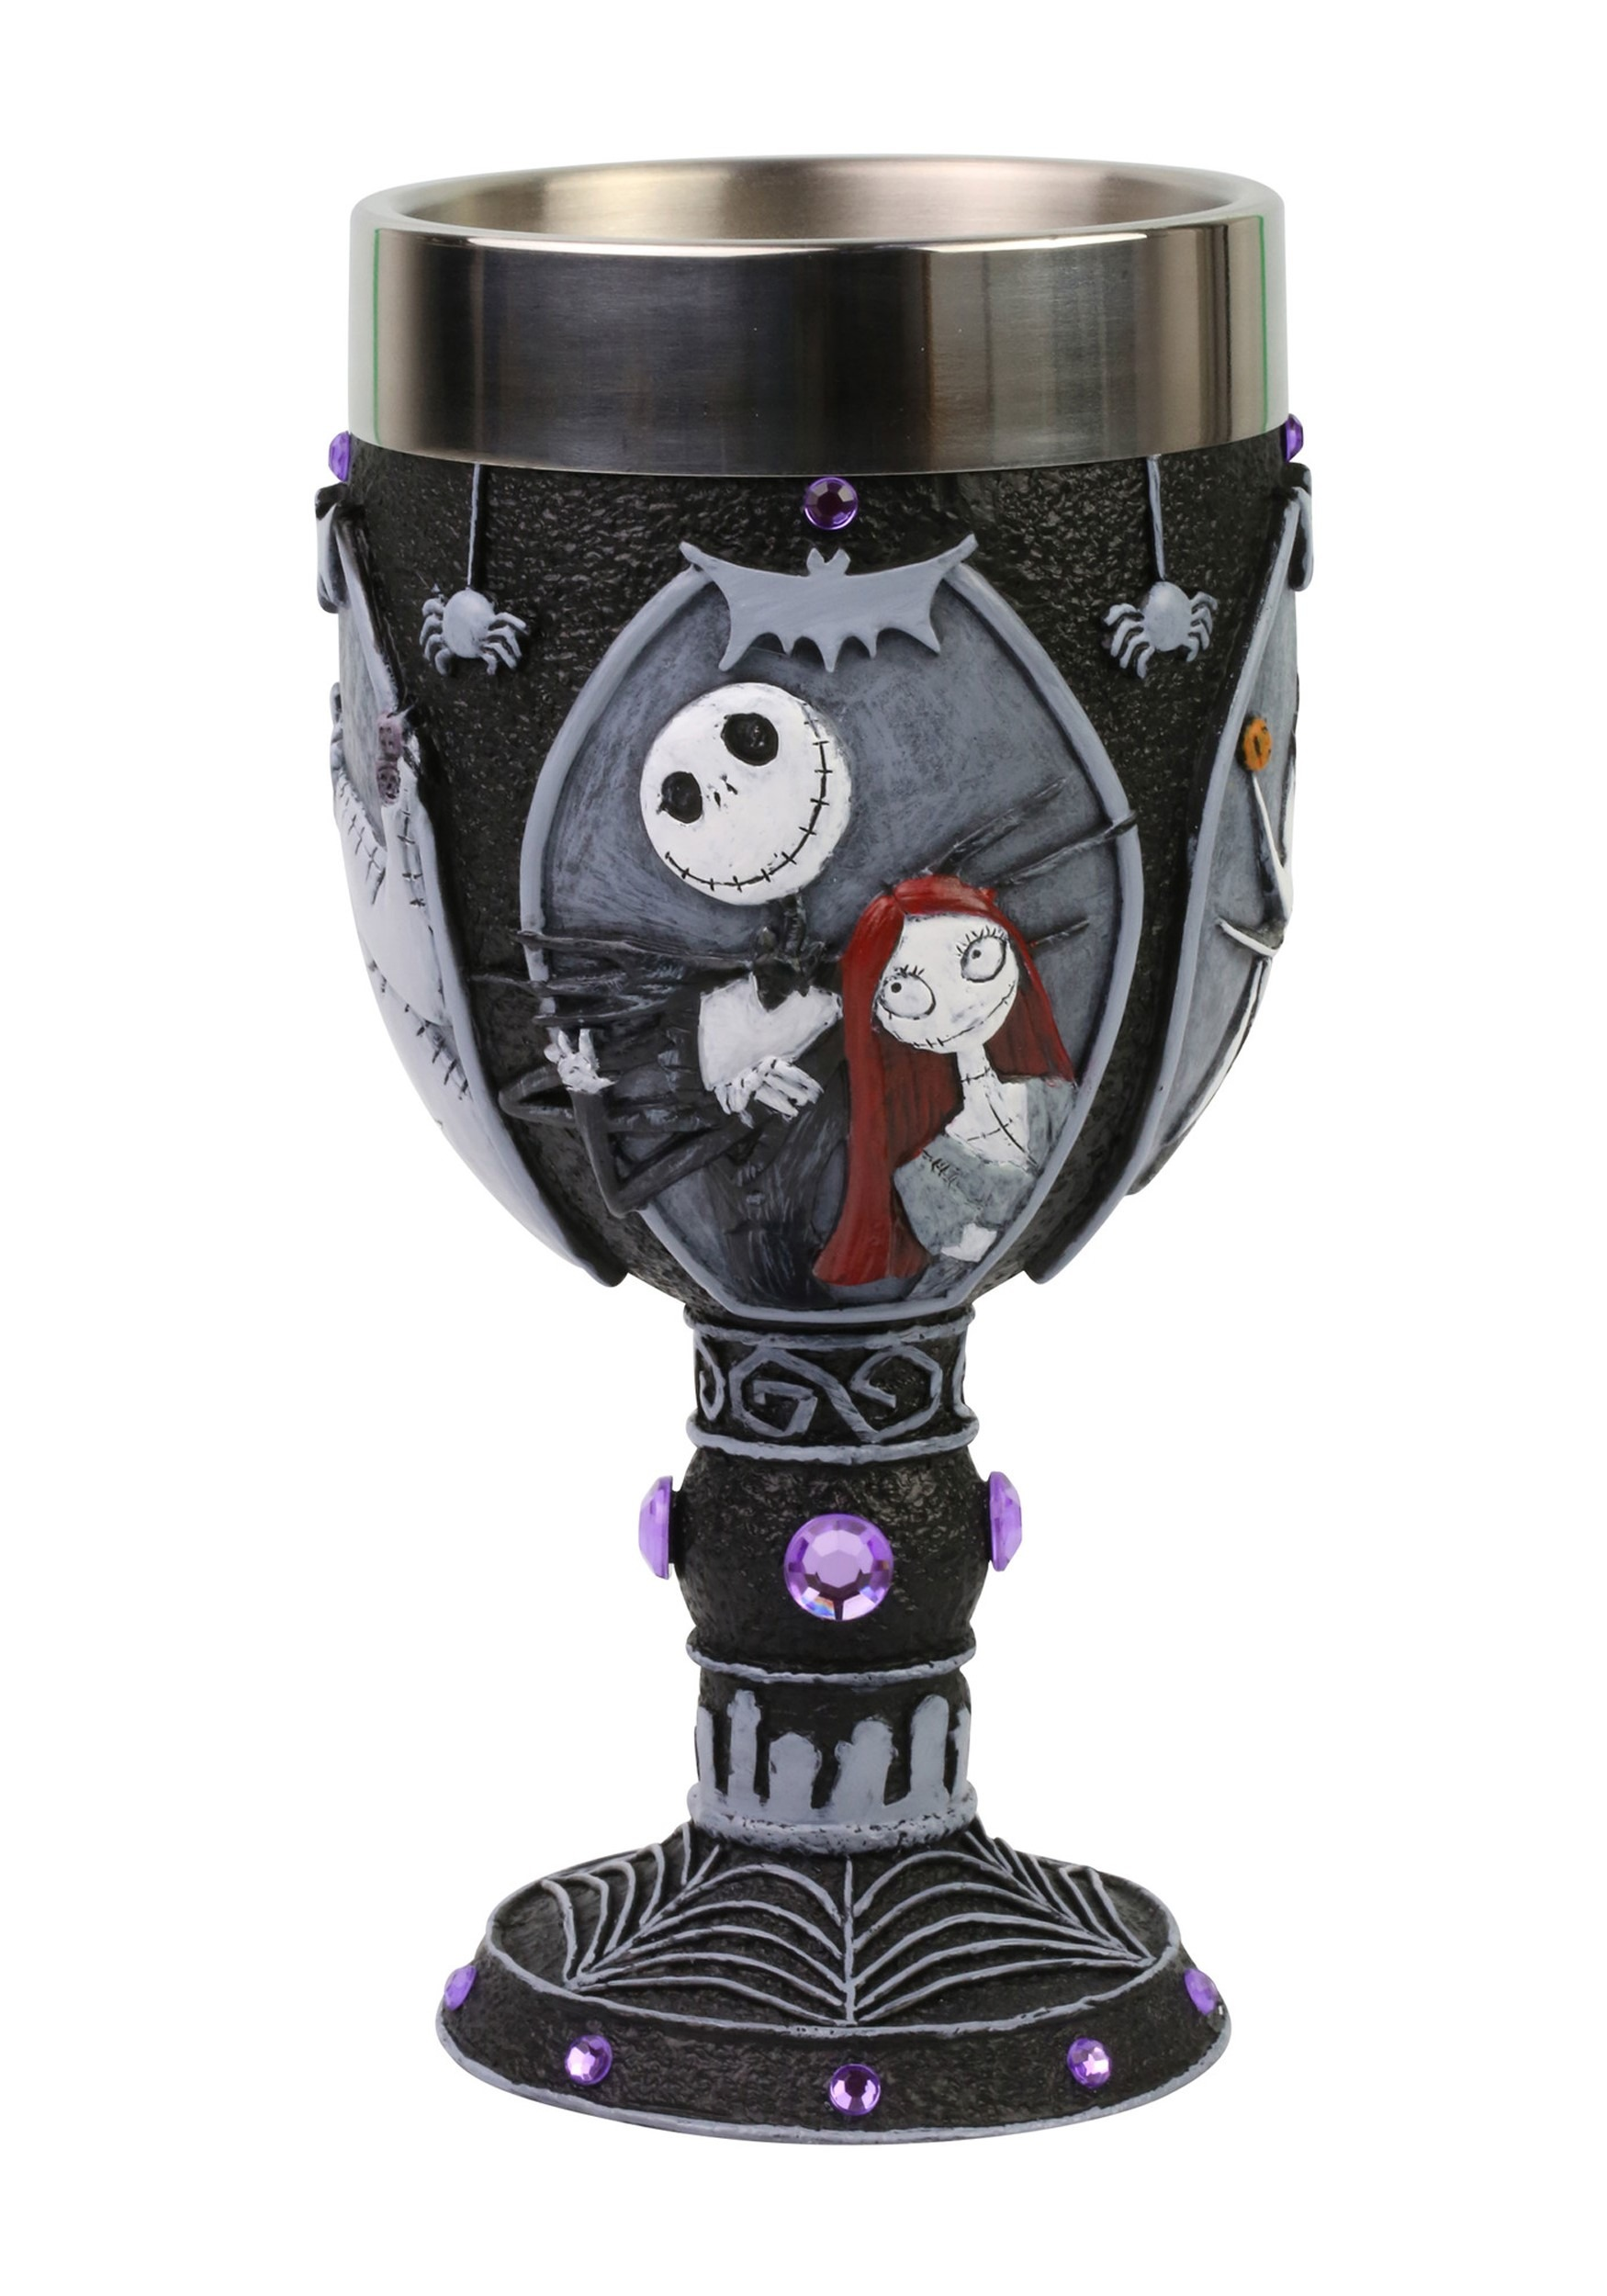 Nightmare Before Christmas Goblet Collectible